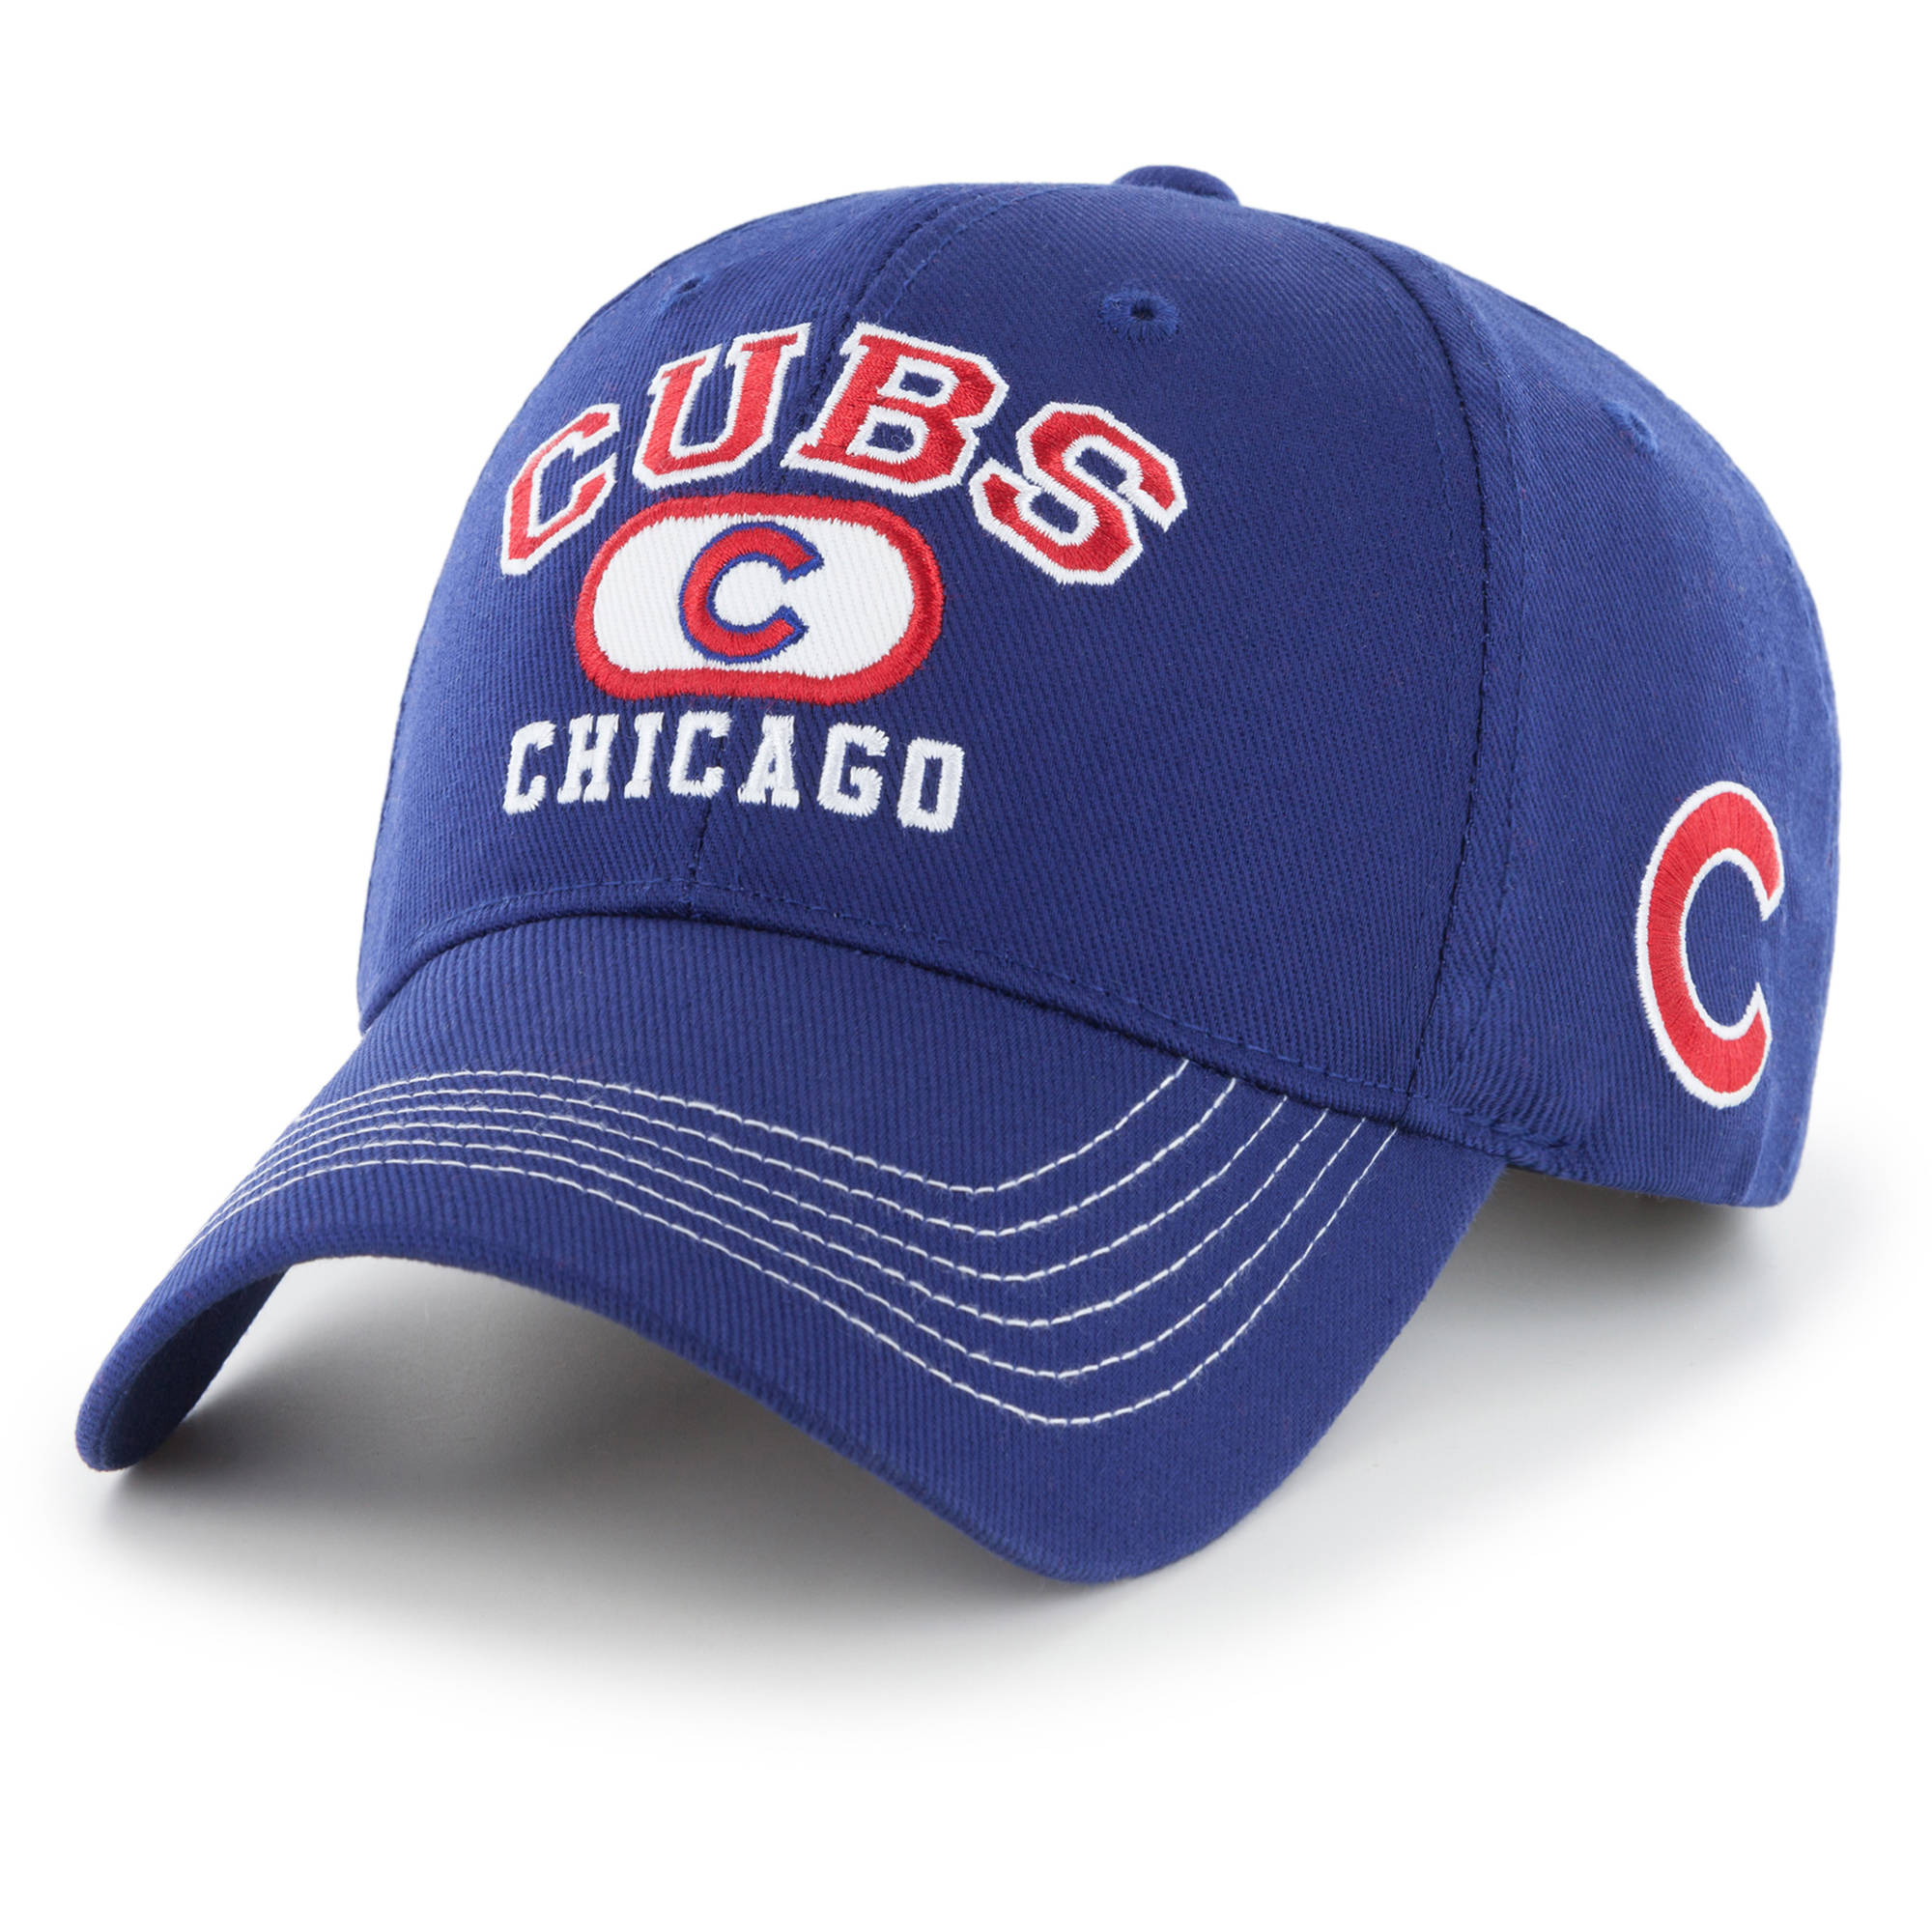 MLB Chicago Cubs Mass Draft Cap